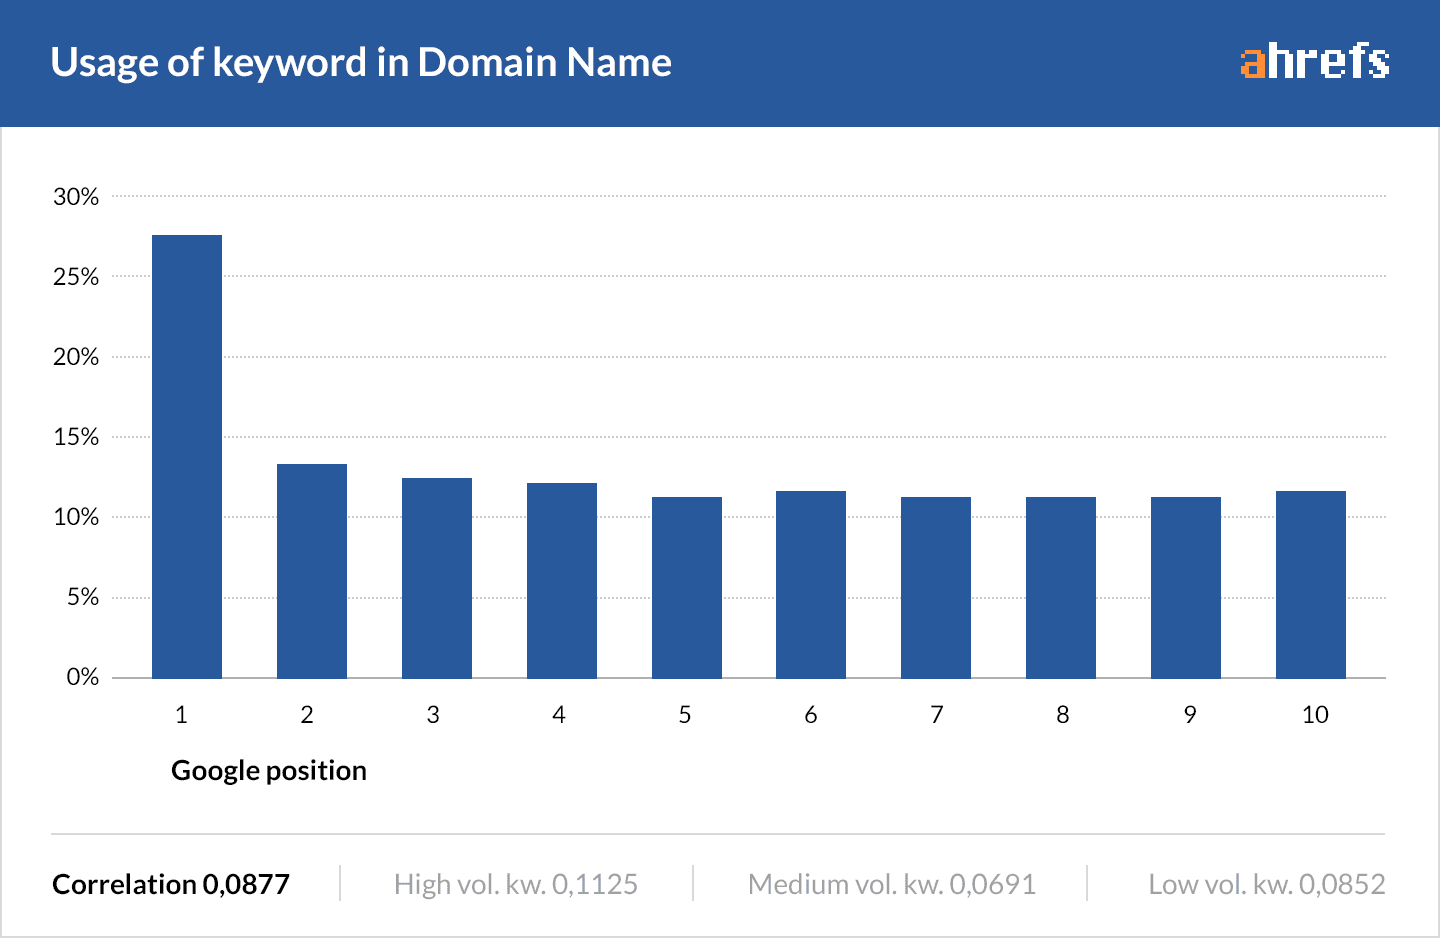 Usage of keyword in Domain Name [#ChartoftheDay]